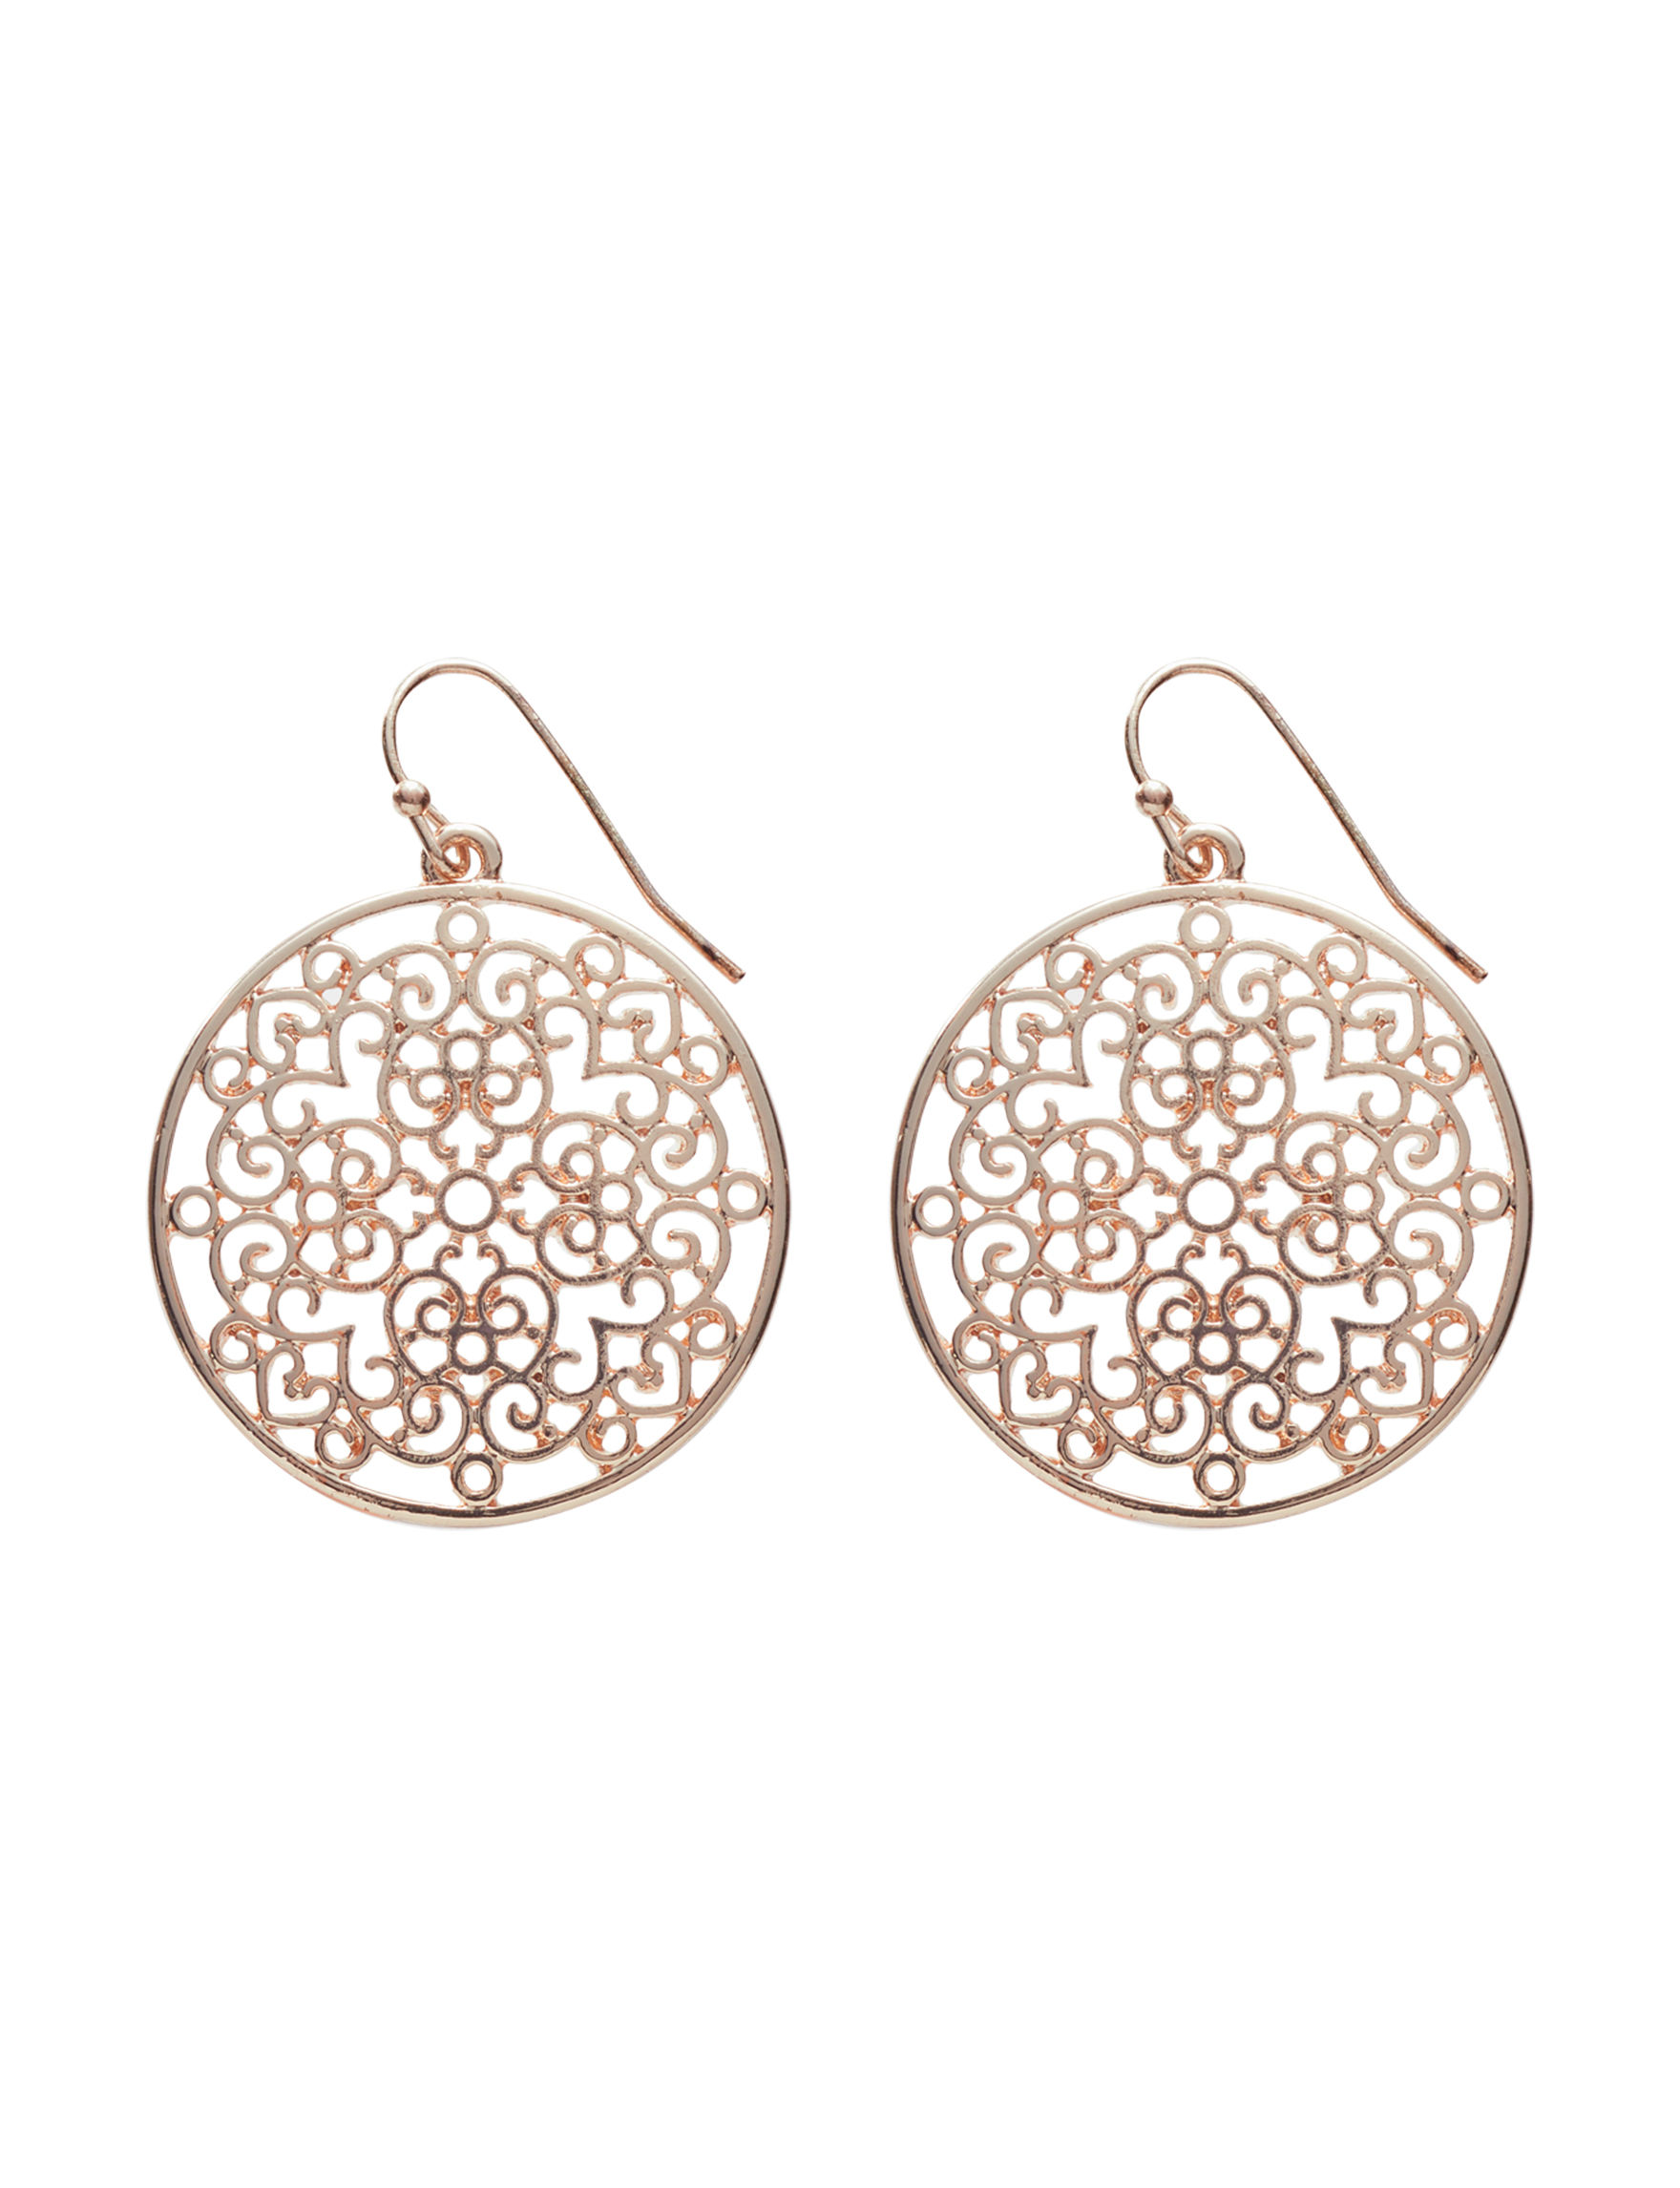 Hannah Rose Gold Drops Earrings Fashion Jewelry